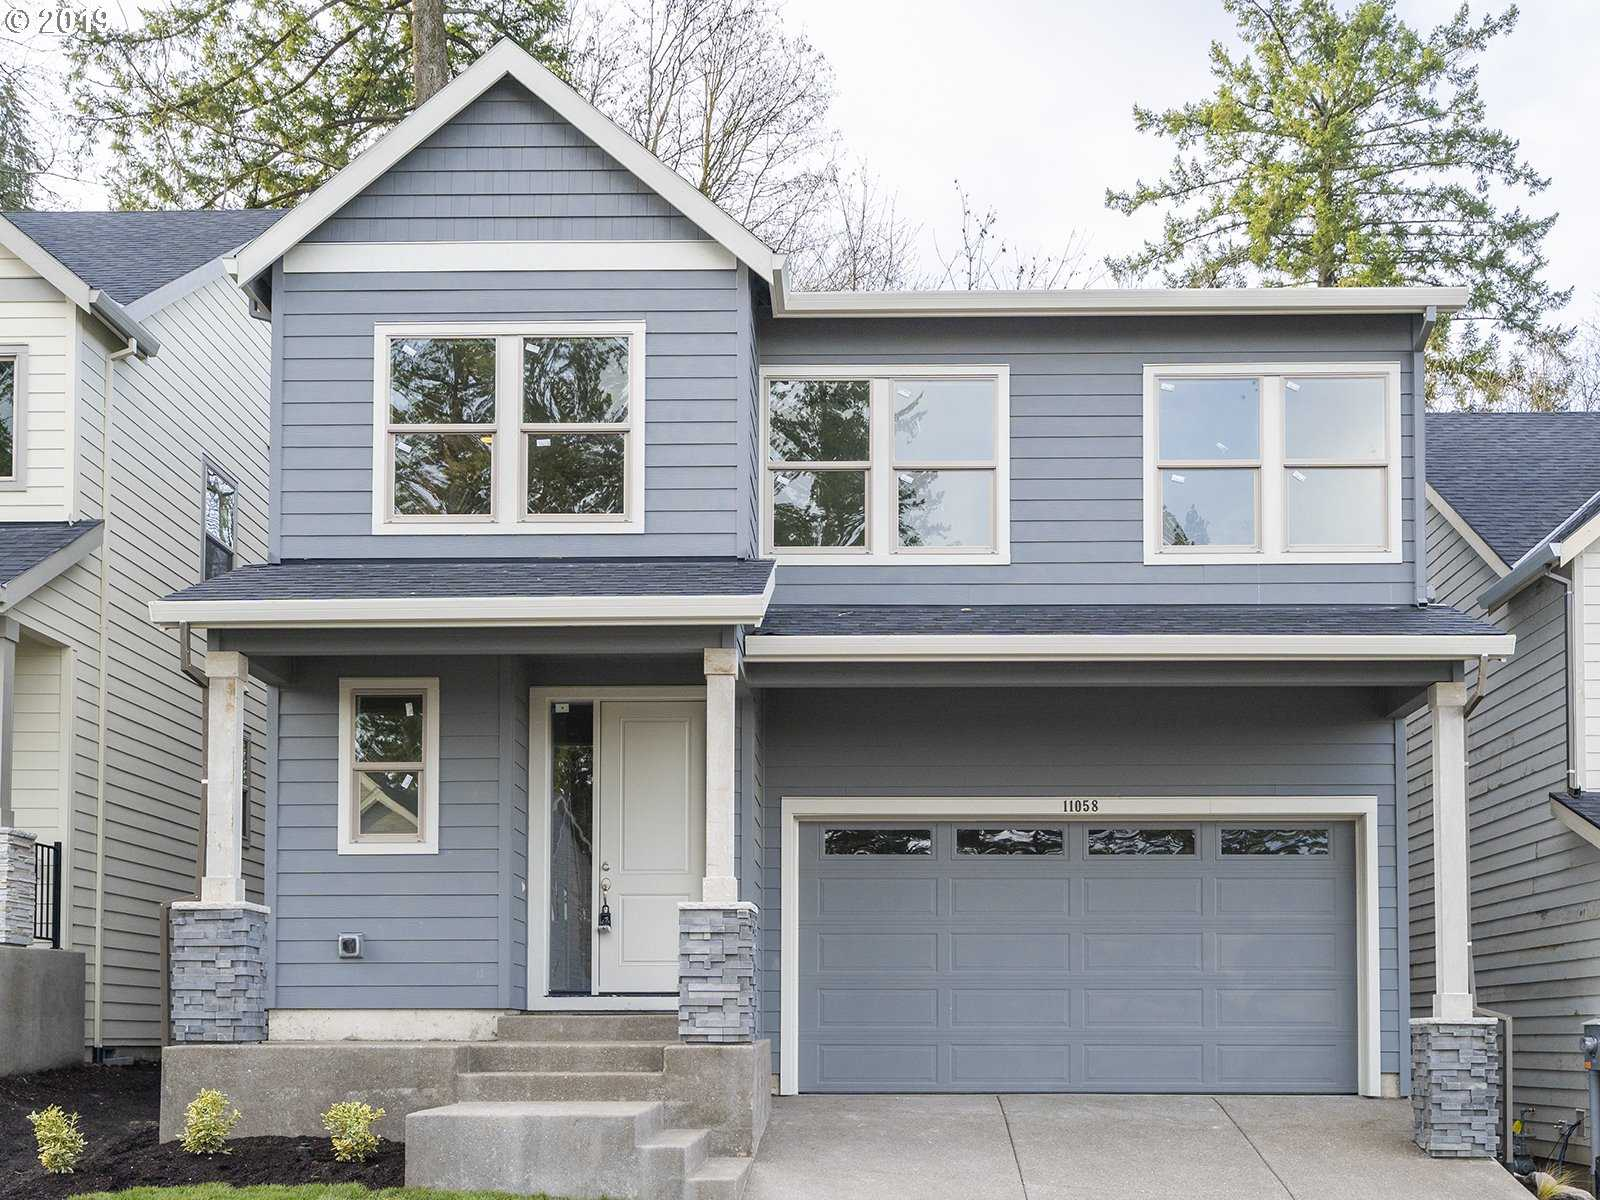 $479,000 - 4Br/3Ba -  for Sale in Annand Heights, Tigard